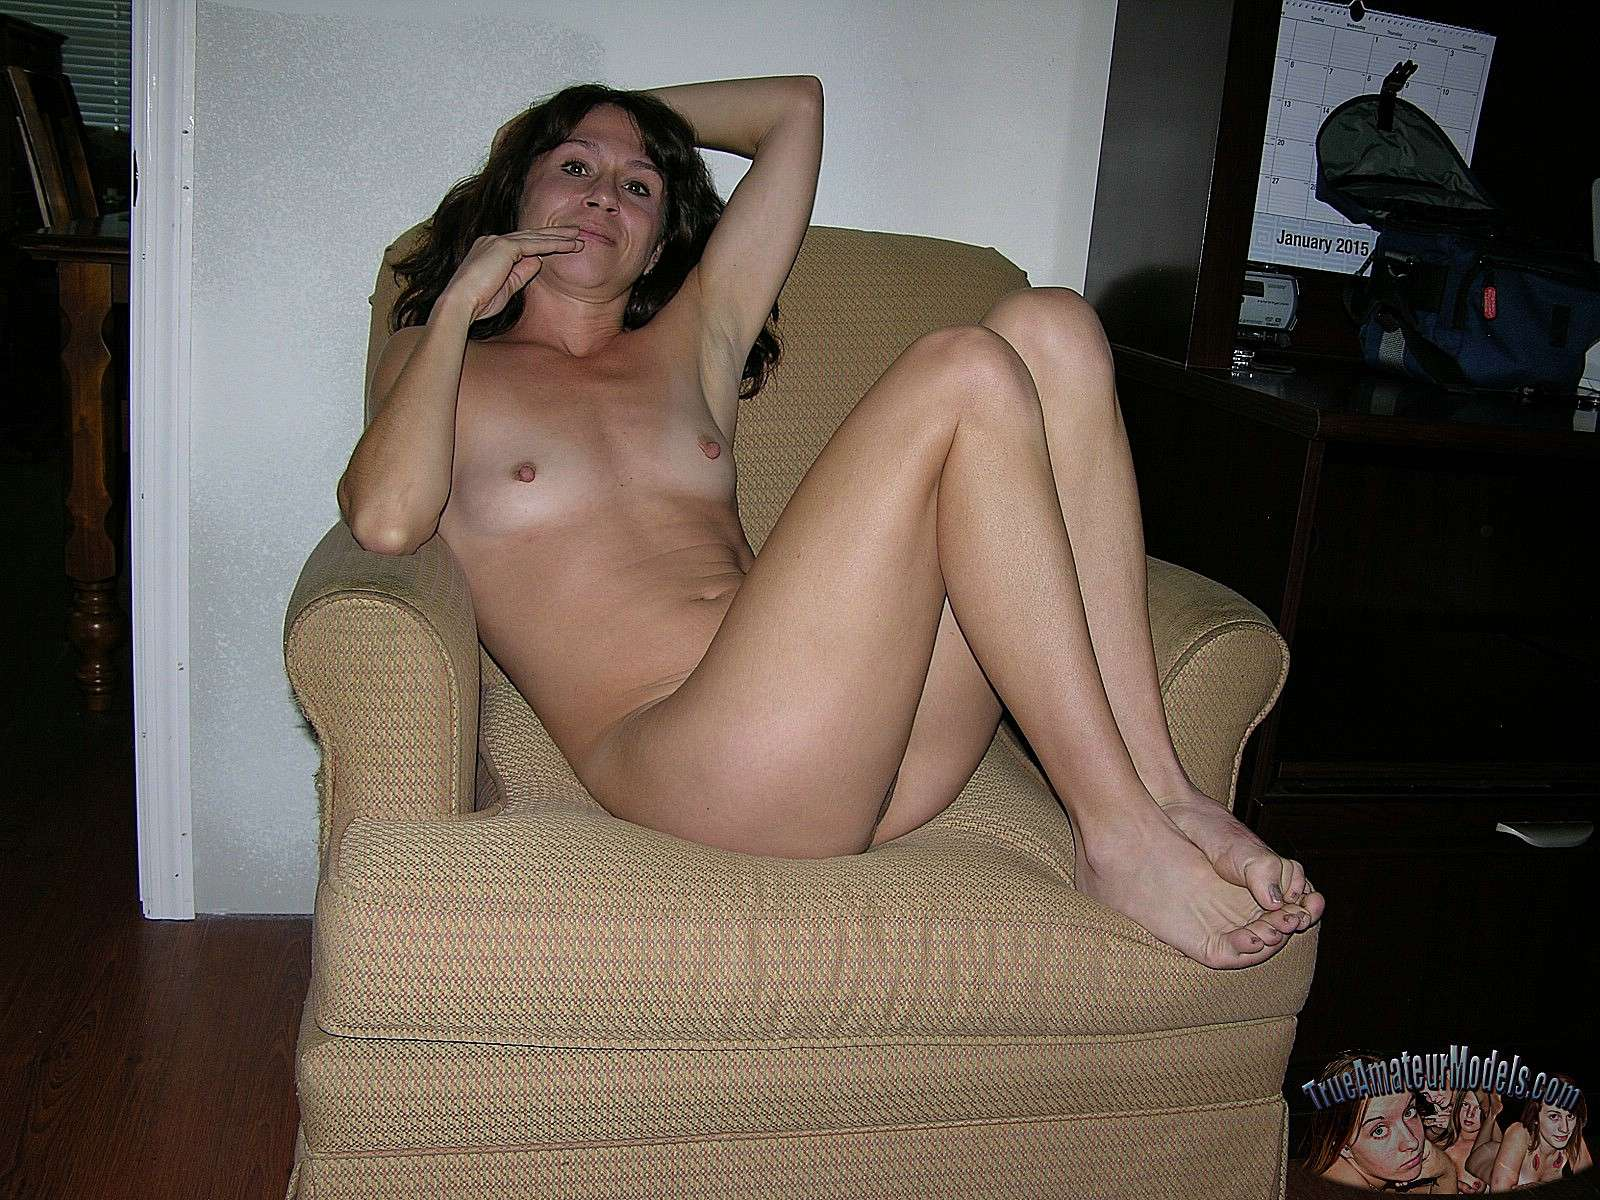 Amature Mom Porn amateur nude mom . naked photo. comments: 1